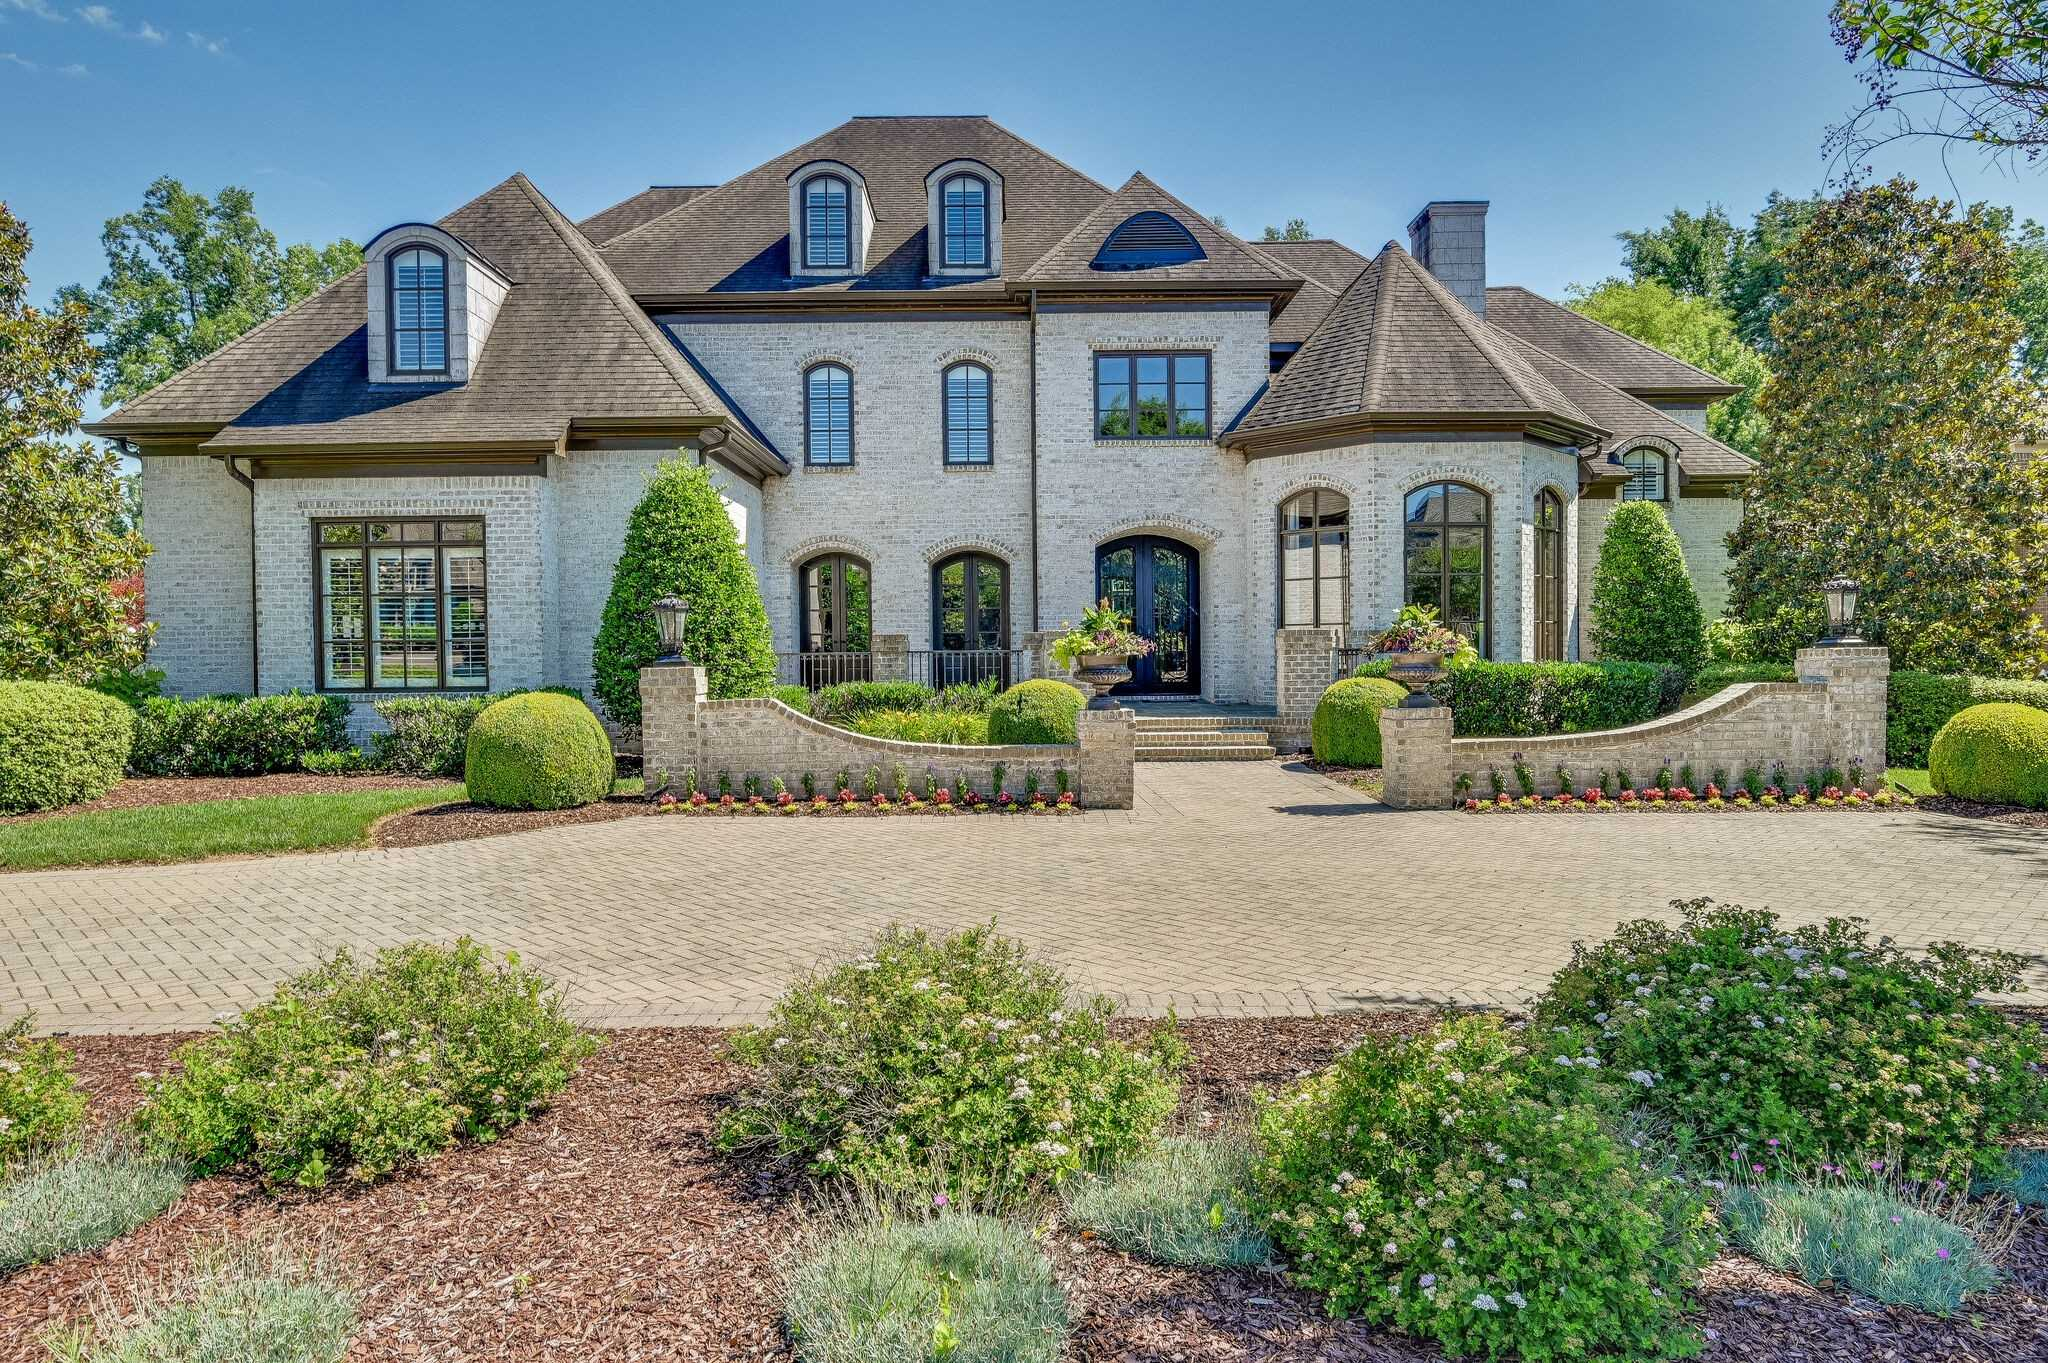 $2,179,000 - 4Br/6Ba -  for Sale in Governors Club Ph 11, Brentwood